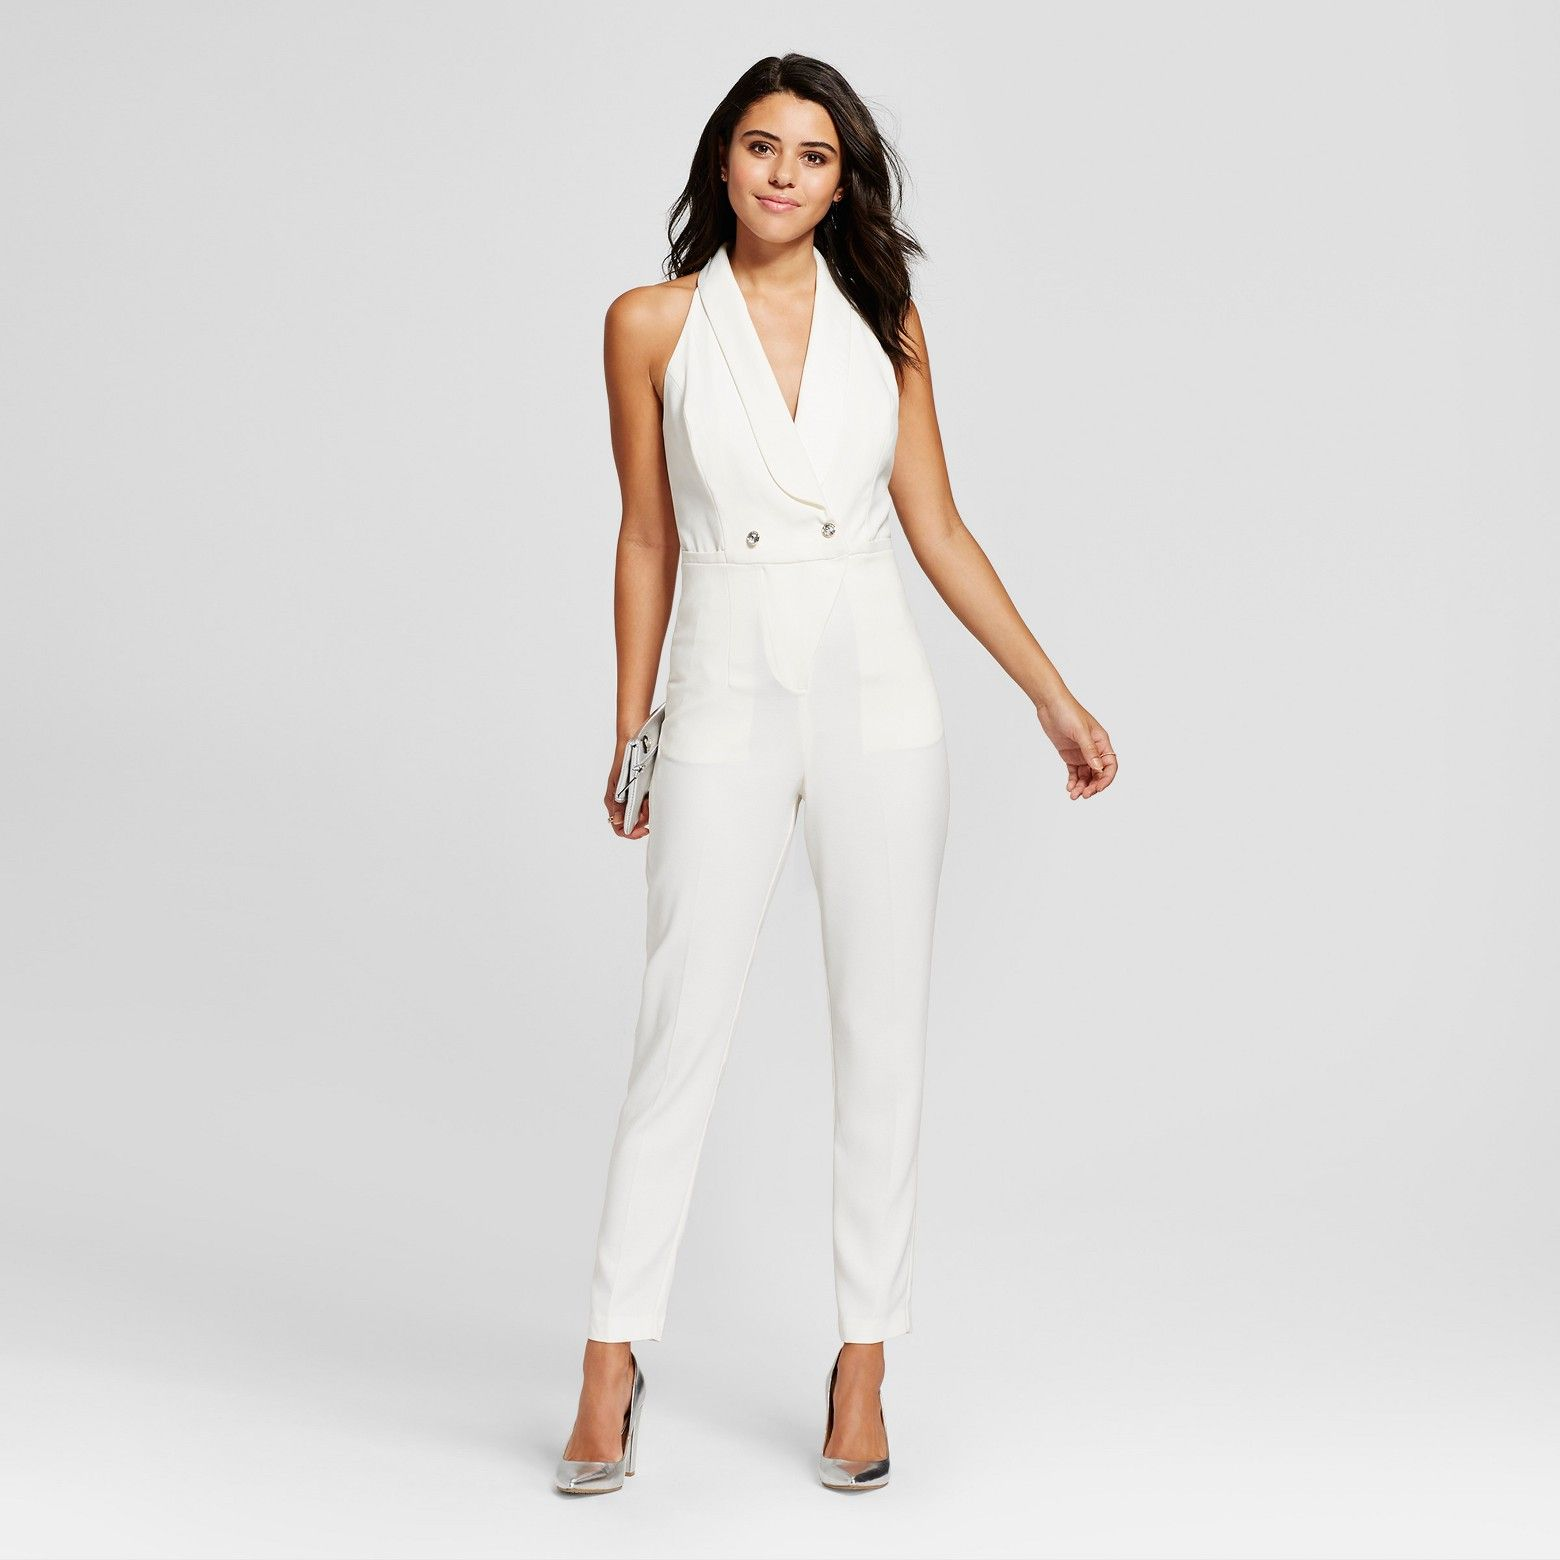 dcb6e32ef655 Women s Satin Crepe Tuxedo Jumpsuit - XOXO (Juniors ) White. Beautiful  party outfit